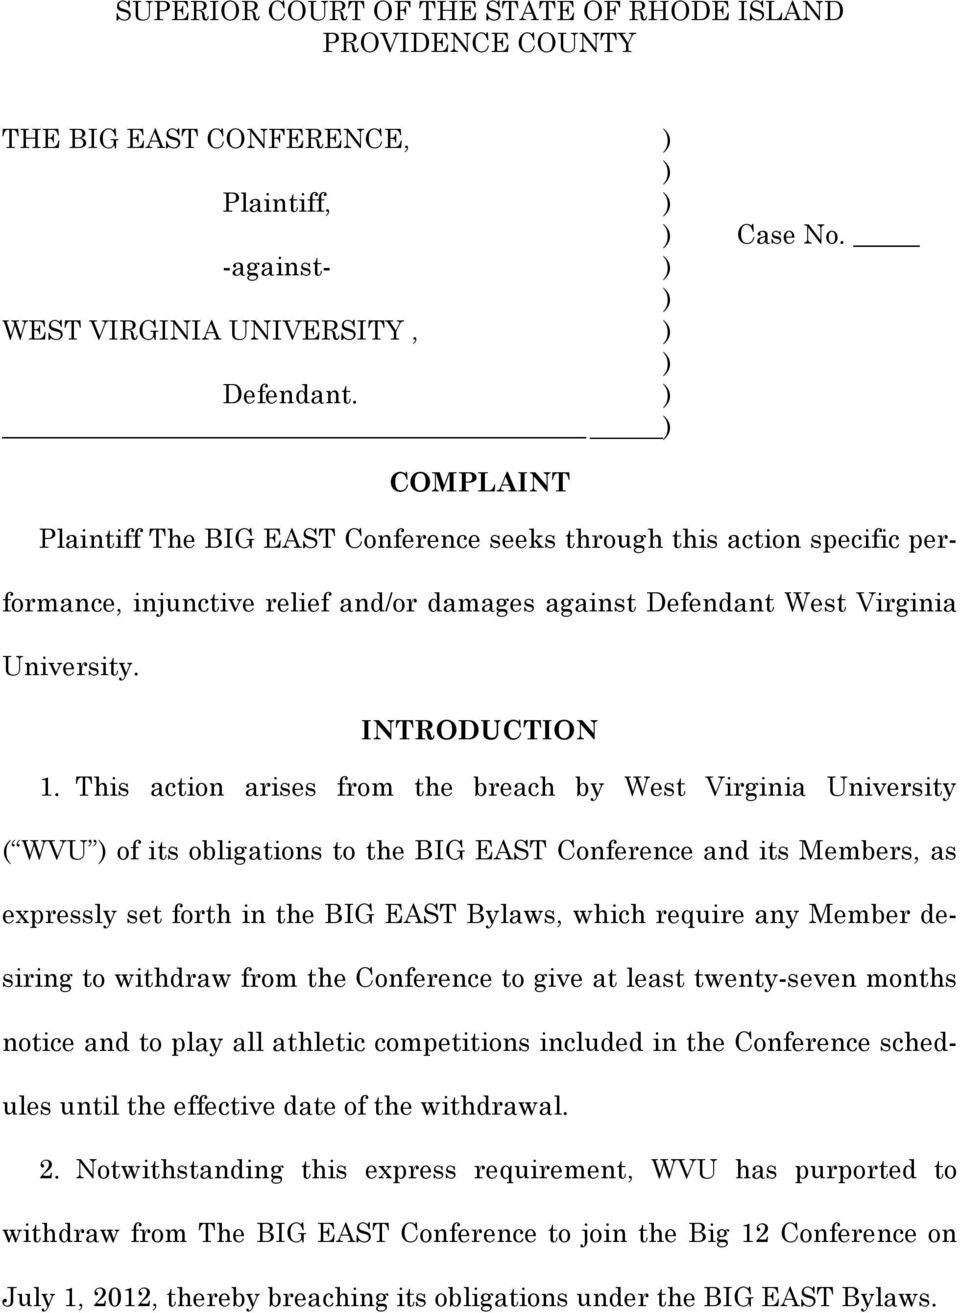 This action arises from the breach by West Virginia University ( WVU ) of its obligations to the BIG EAST Conference and its Members, as expressly set forth in the BIG EAST Bylaws, which require any